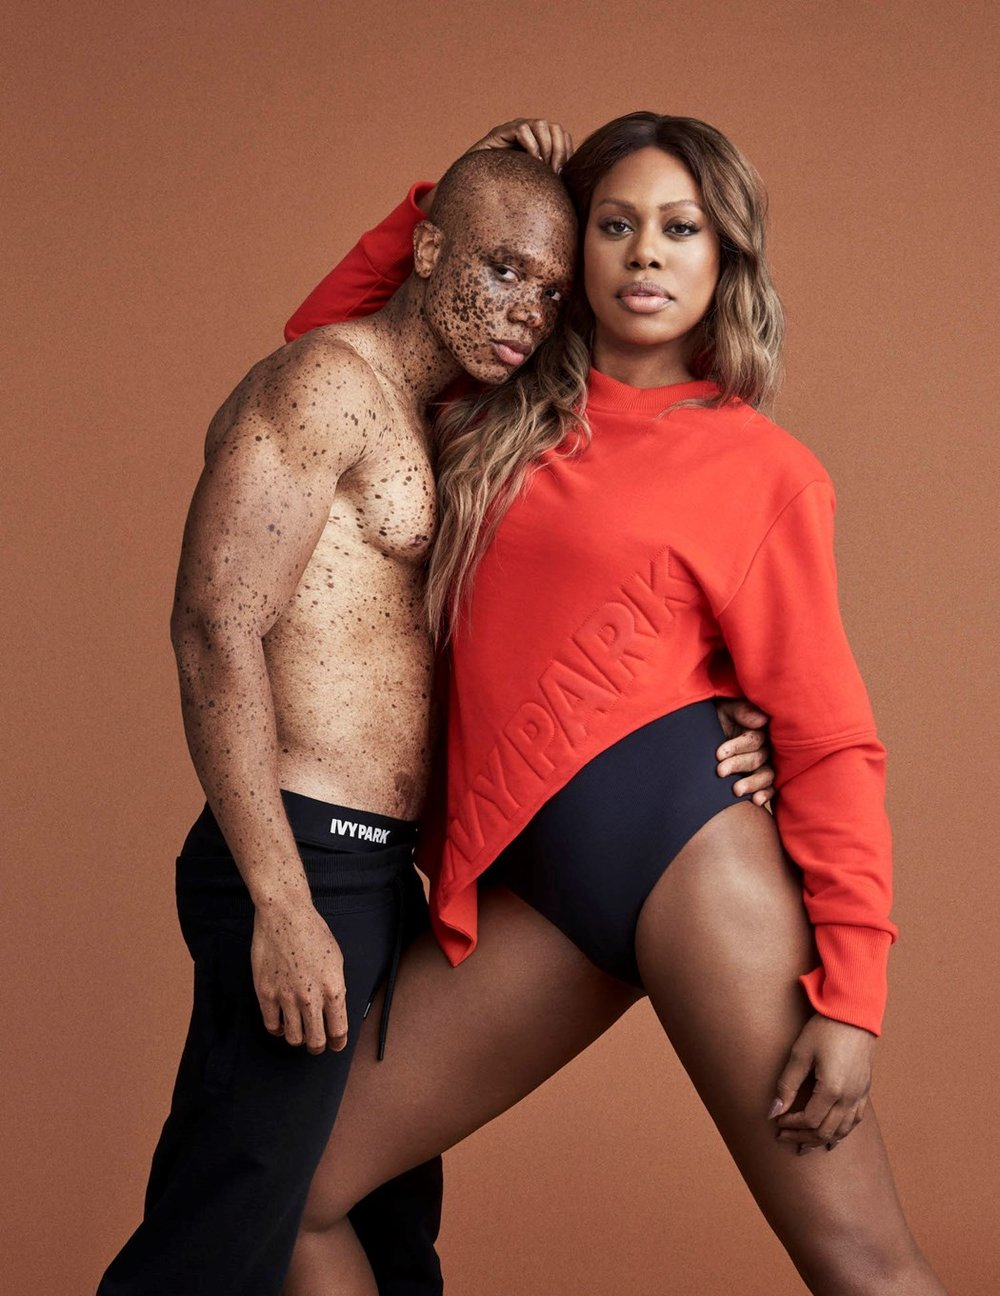 Model Ralph Souffrant and actress Laverne Cox in Ivy Park AW17 campaign.